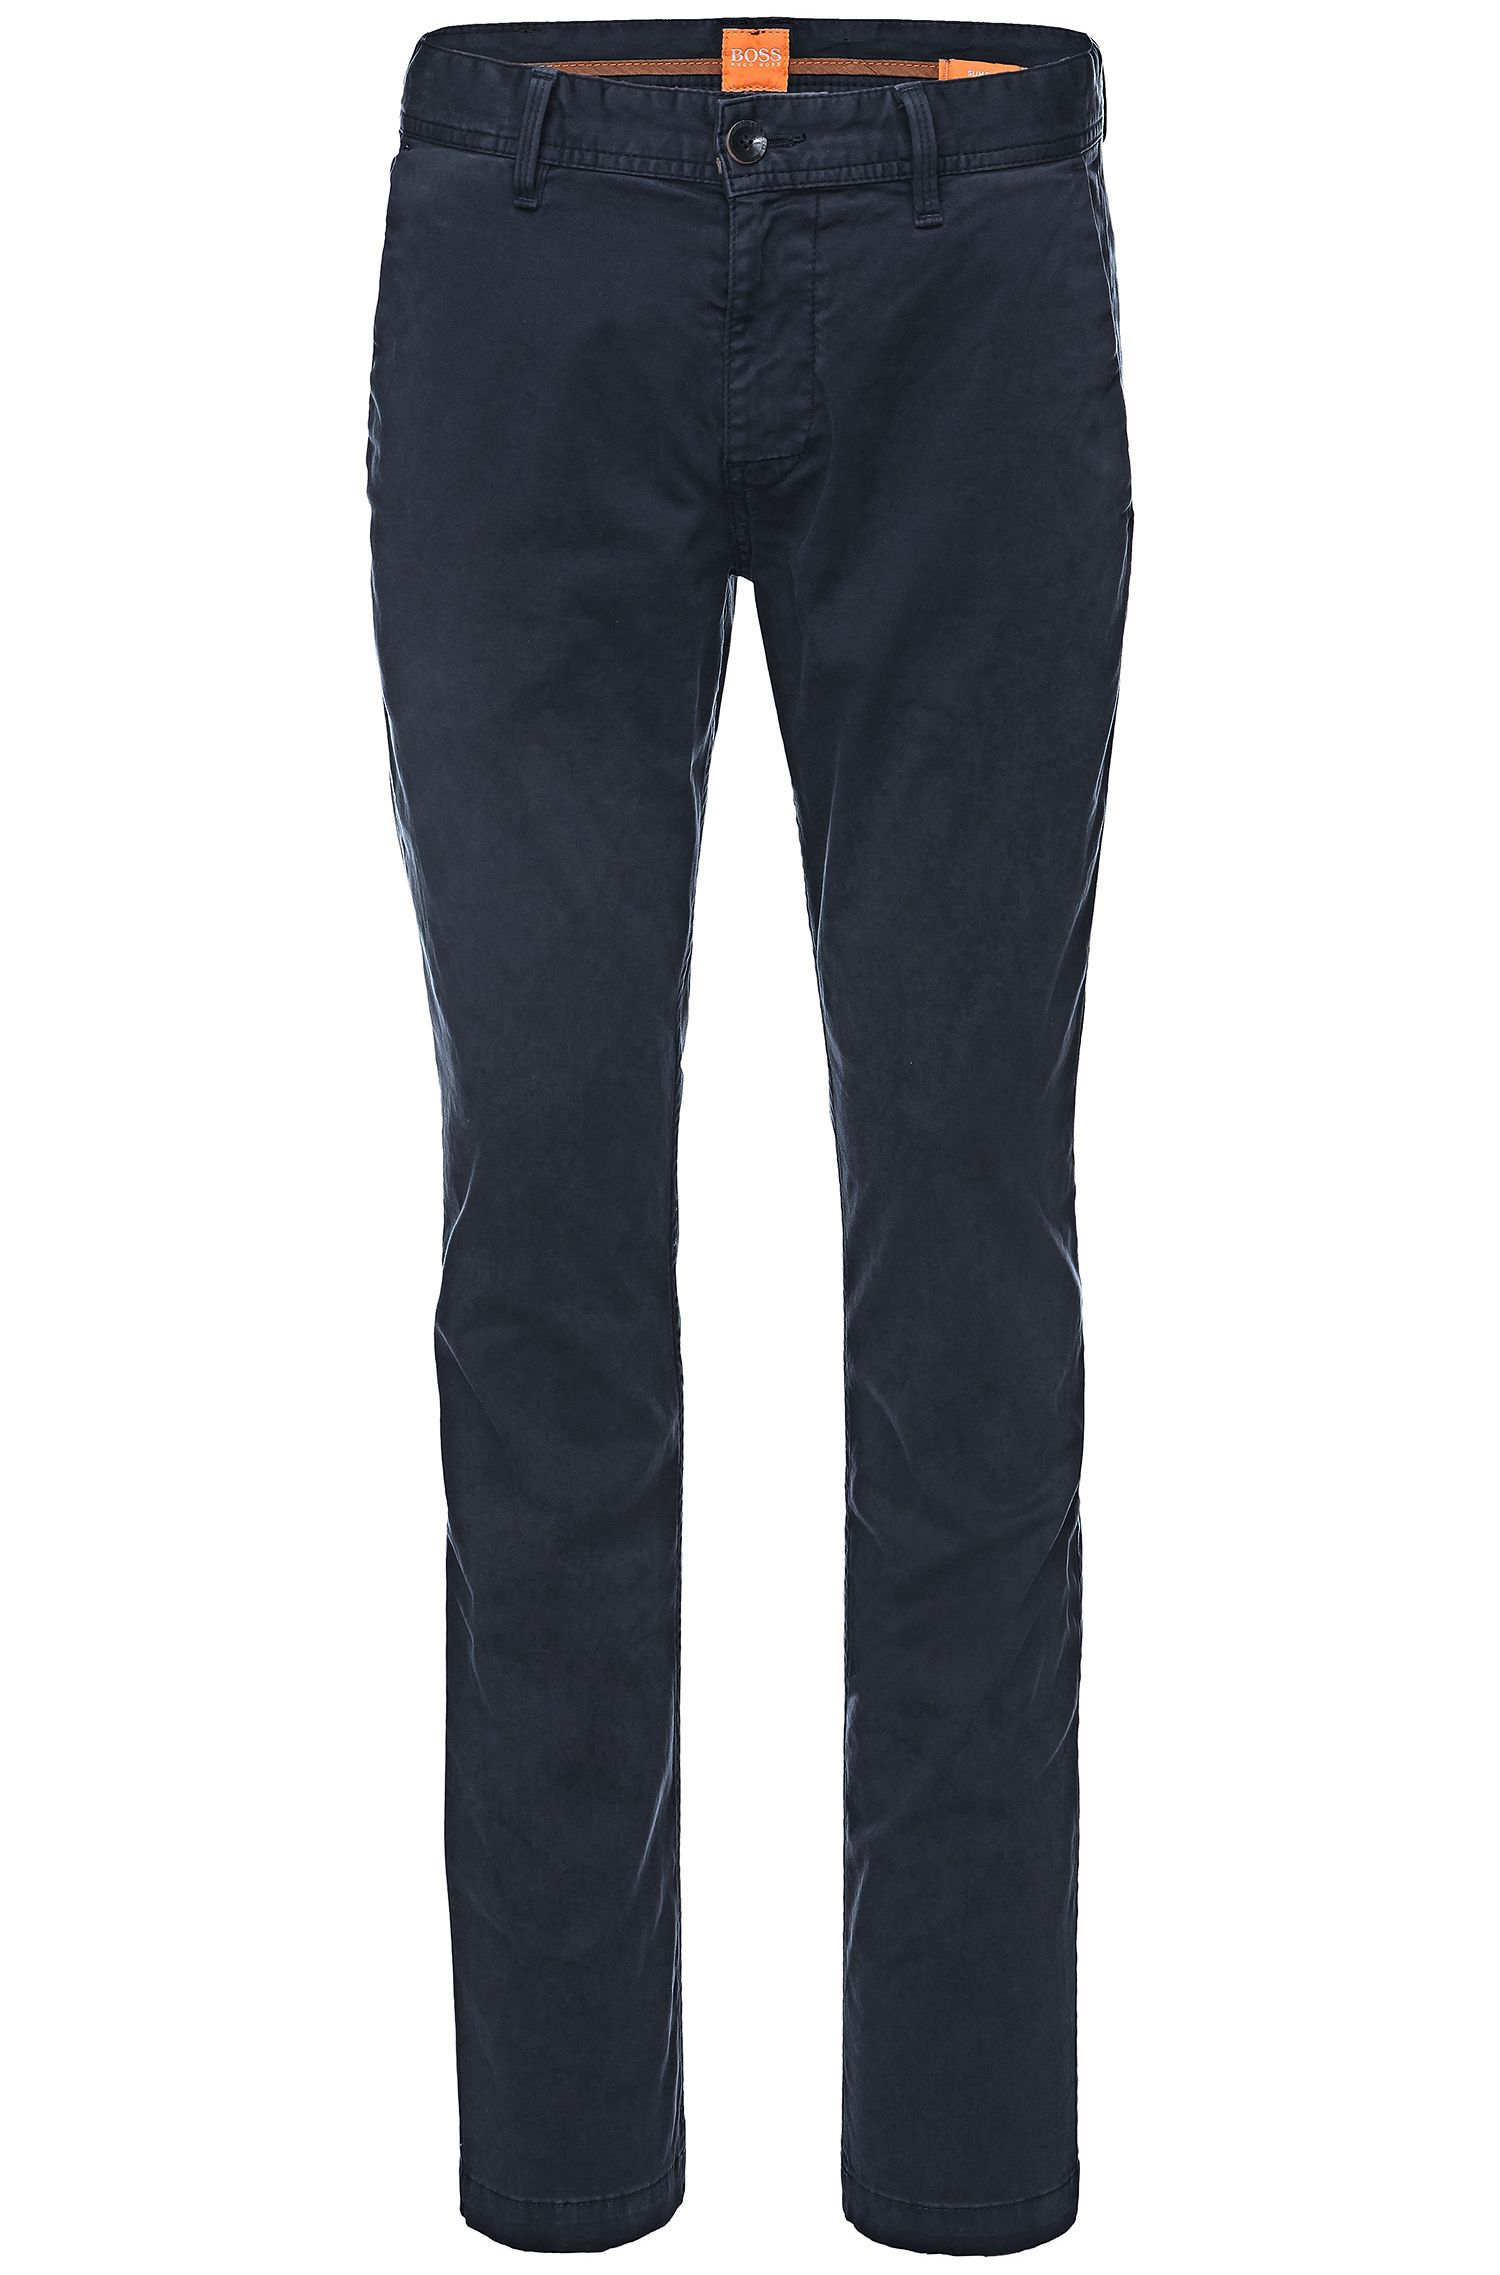 'Schino-Slim-D' | Slim Fit, Stretch Cotton Chinos